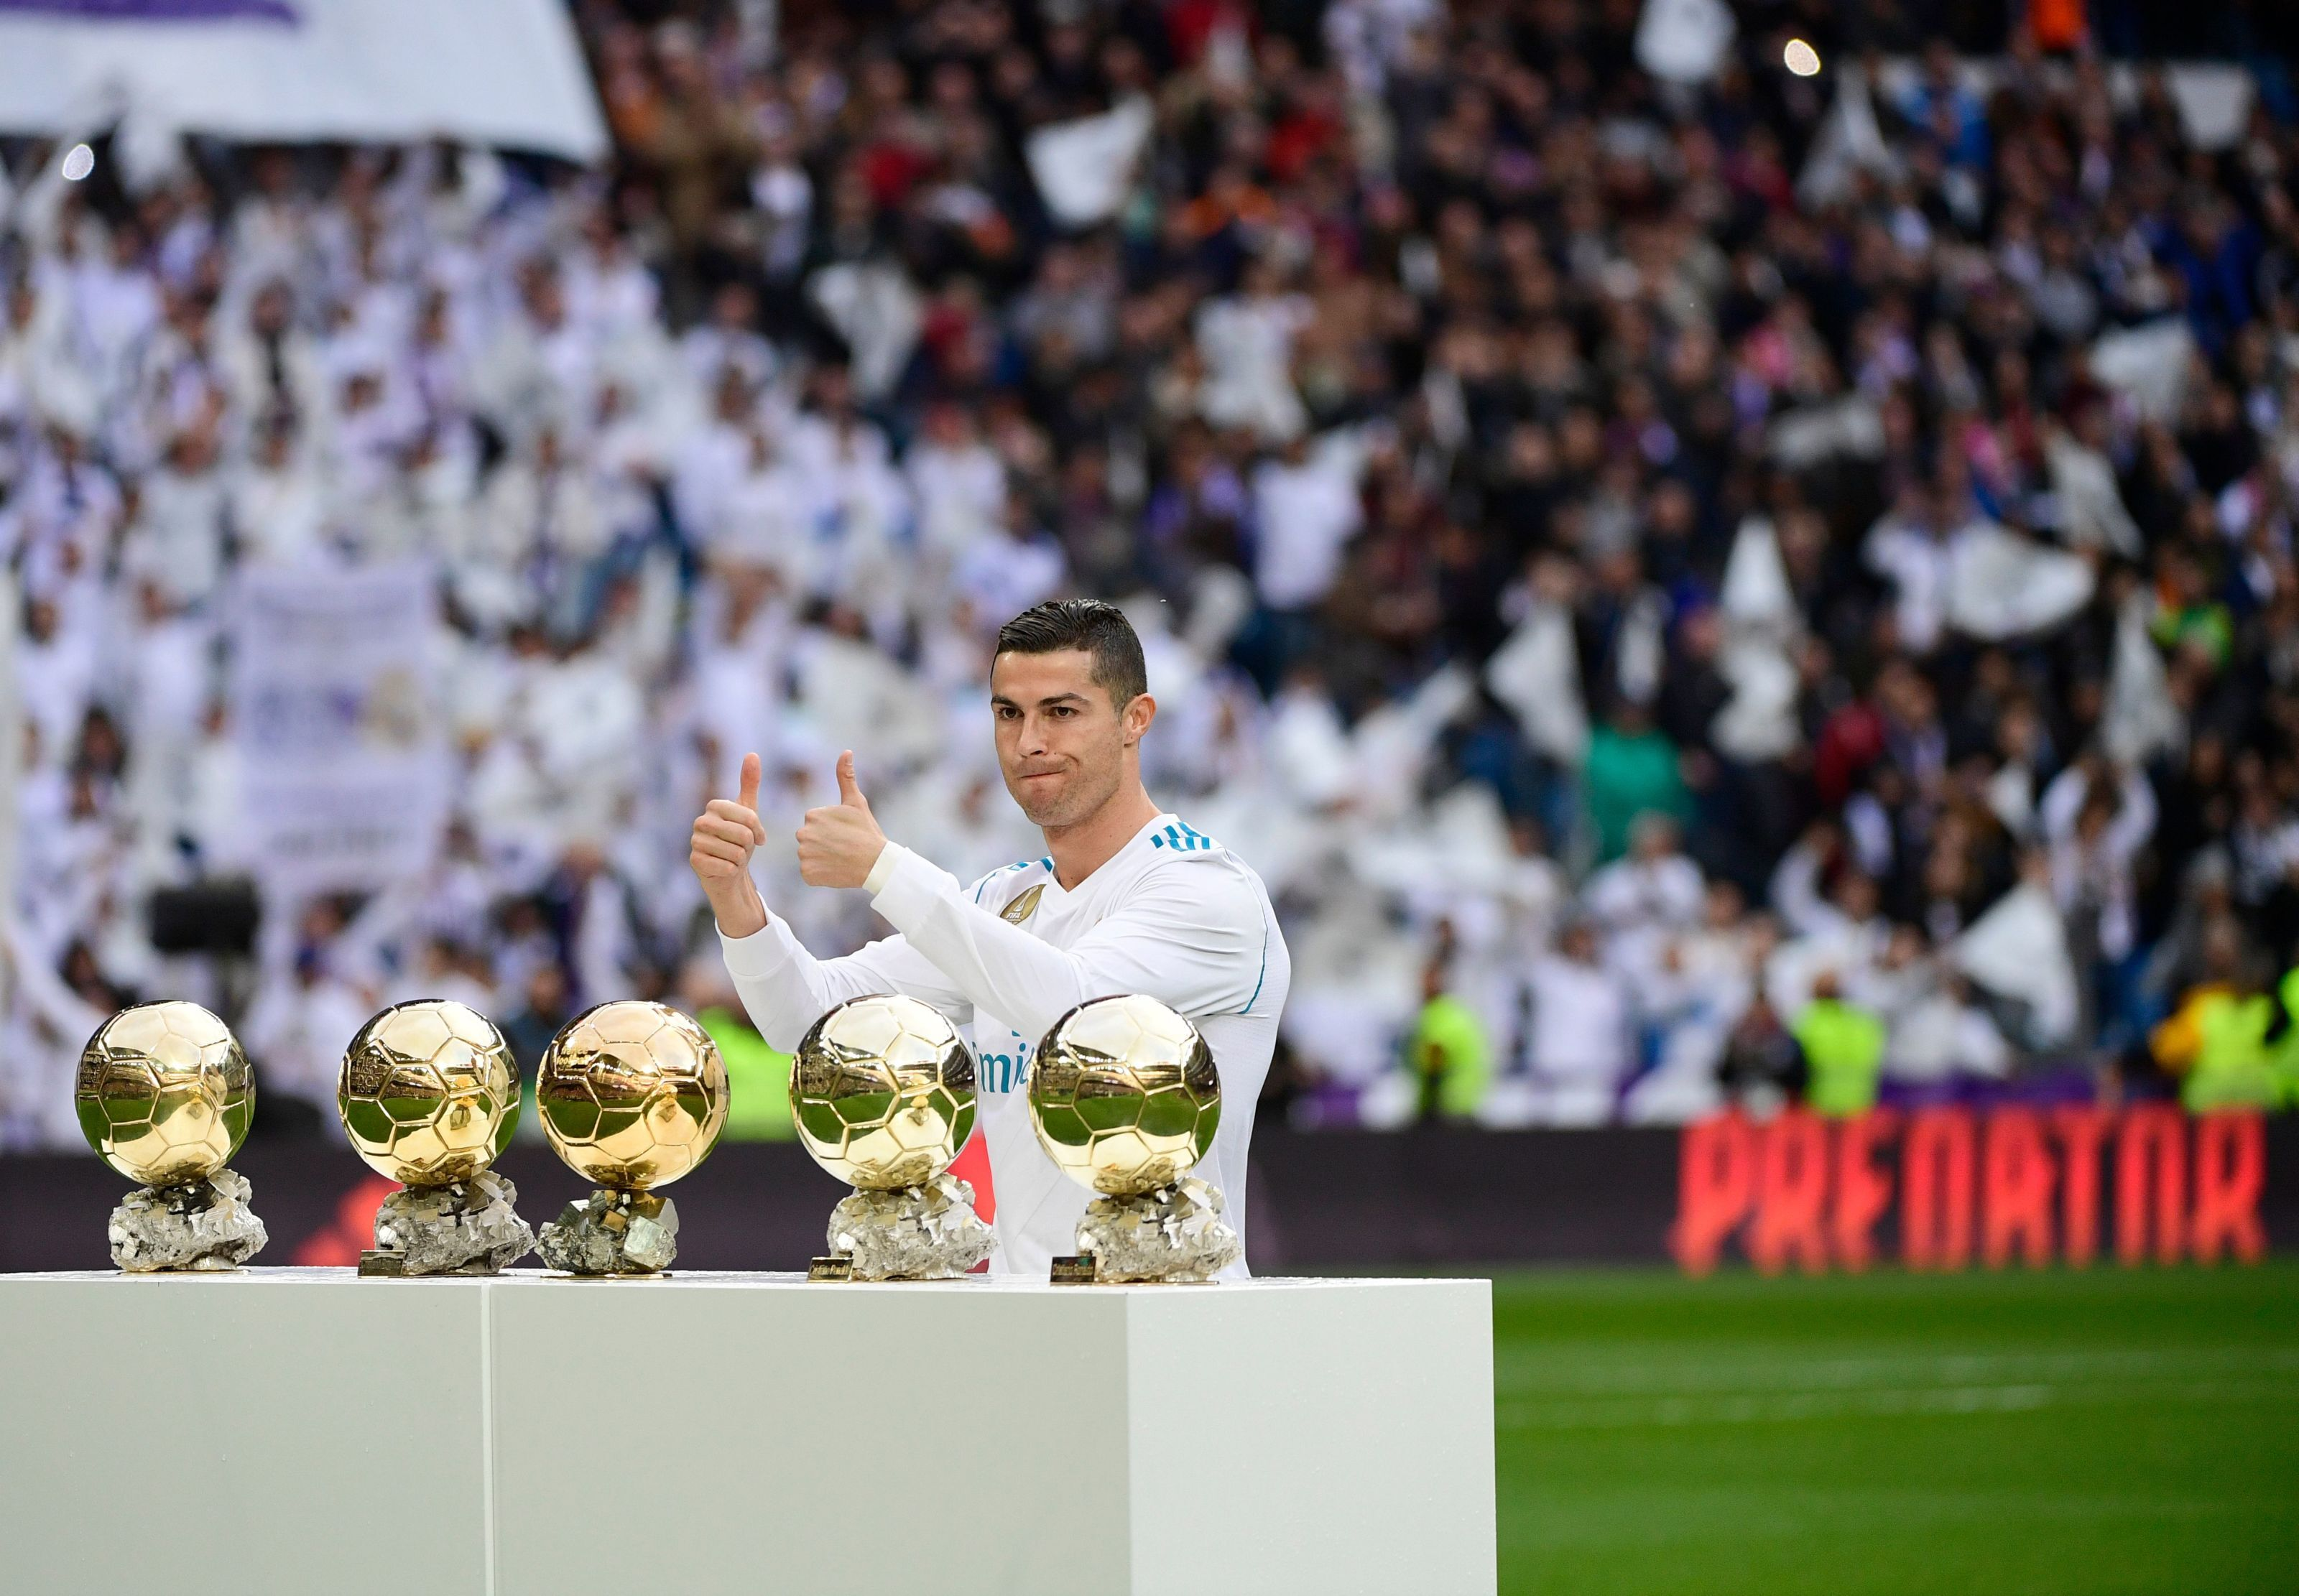 Real Madrid: Cristiano Ronaldo tops the list of biggest names in sports again